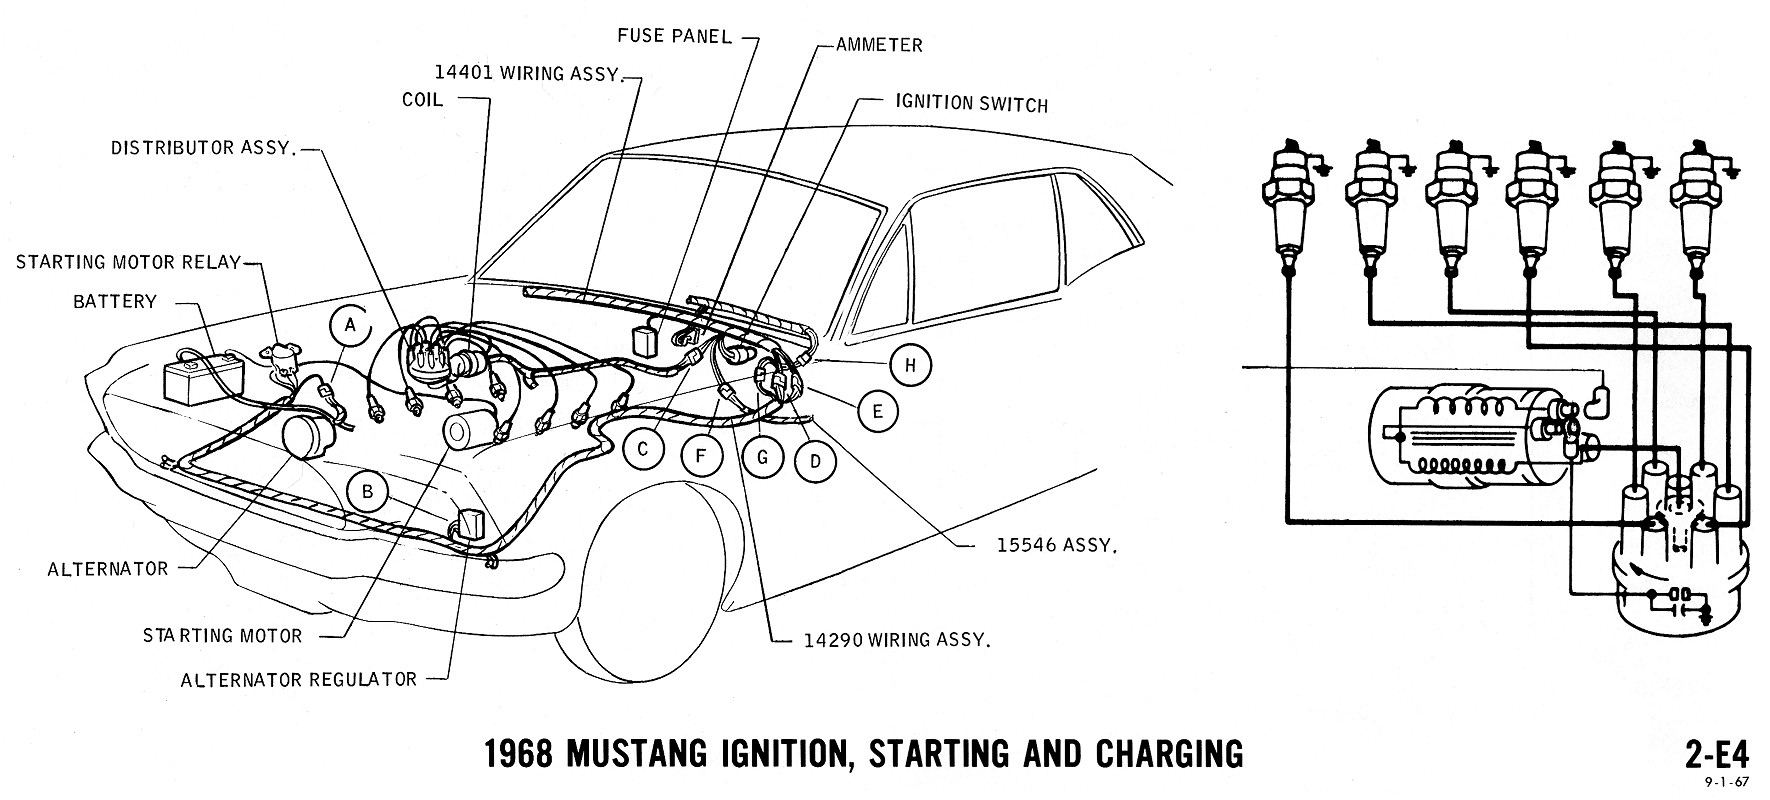 hight resolution of 1967 mustang ignition switch wiring diagram wiring diagrams schema 1968 mustang ignition switch wiring diagram 1969 mustang ignition switch diagram